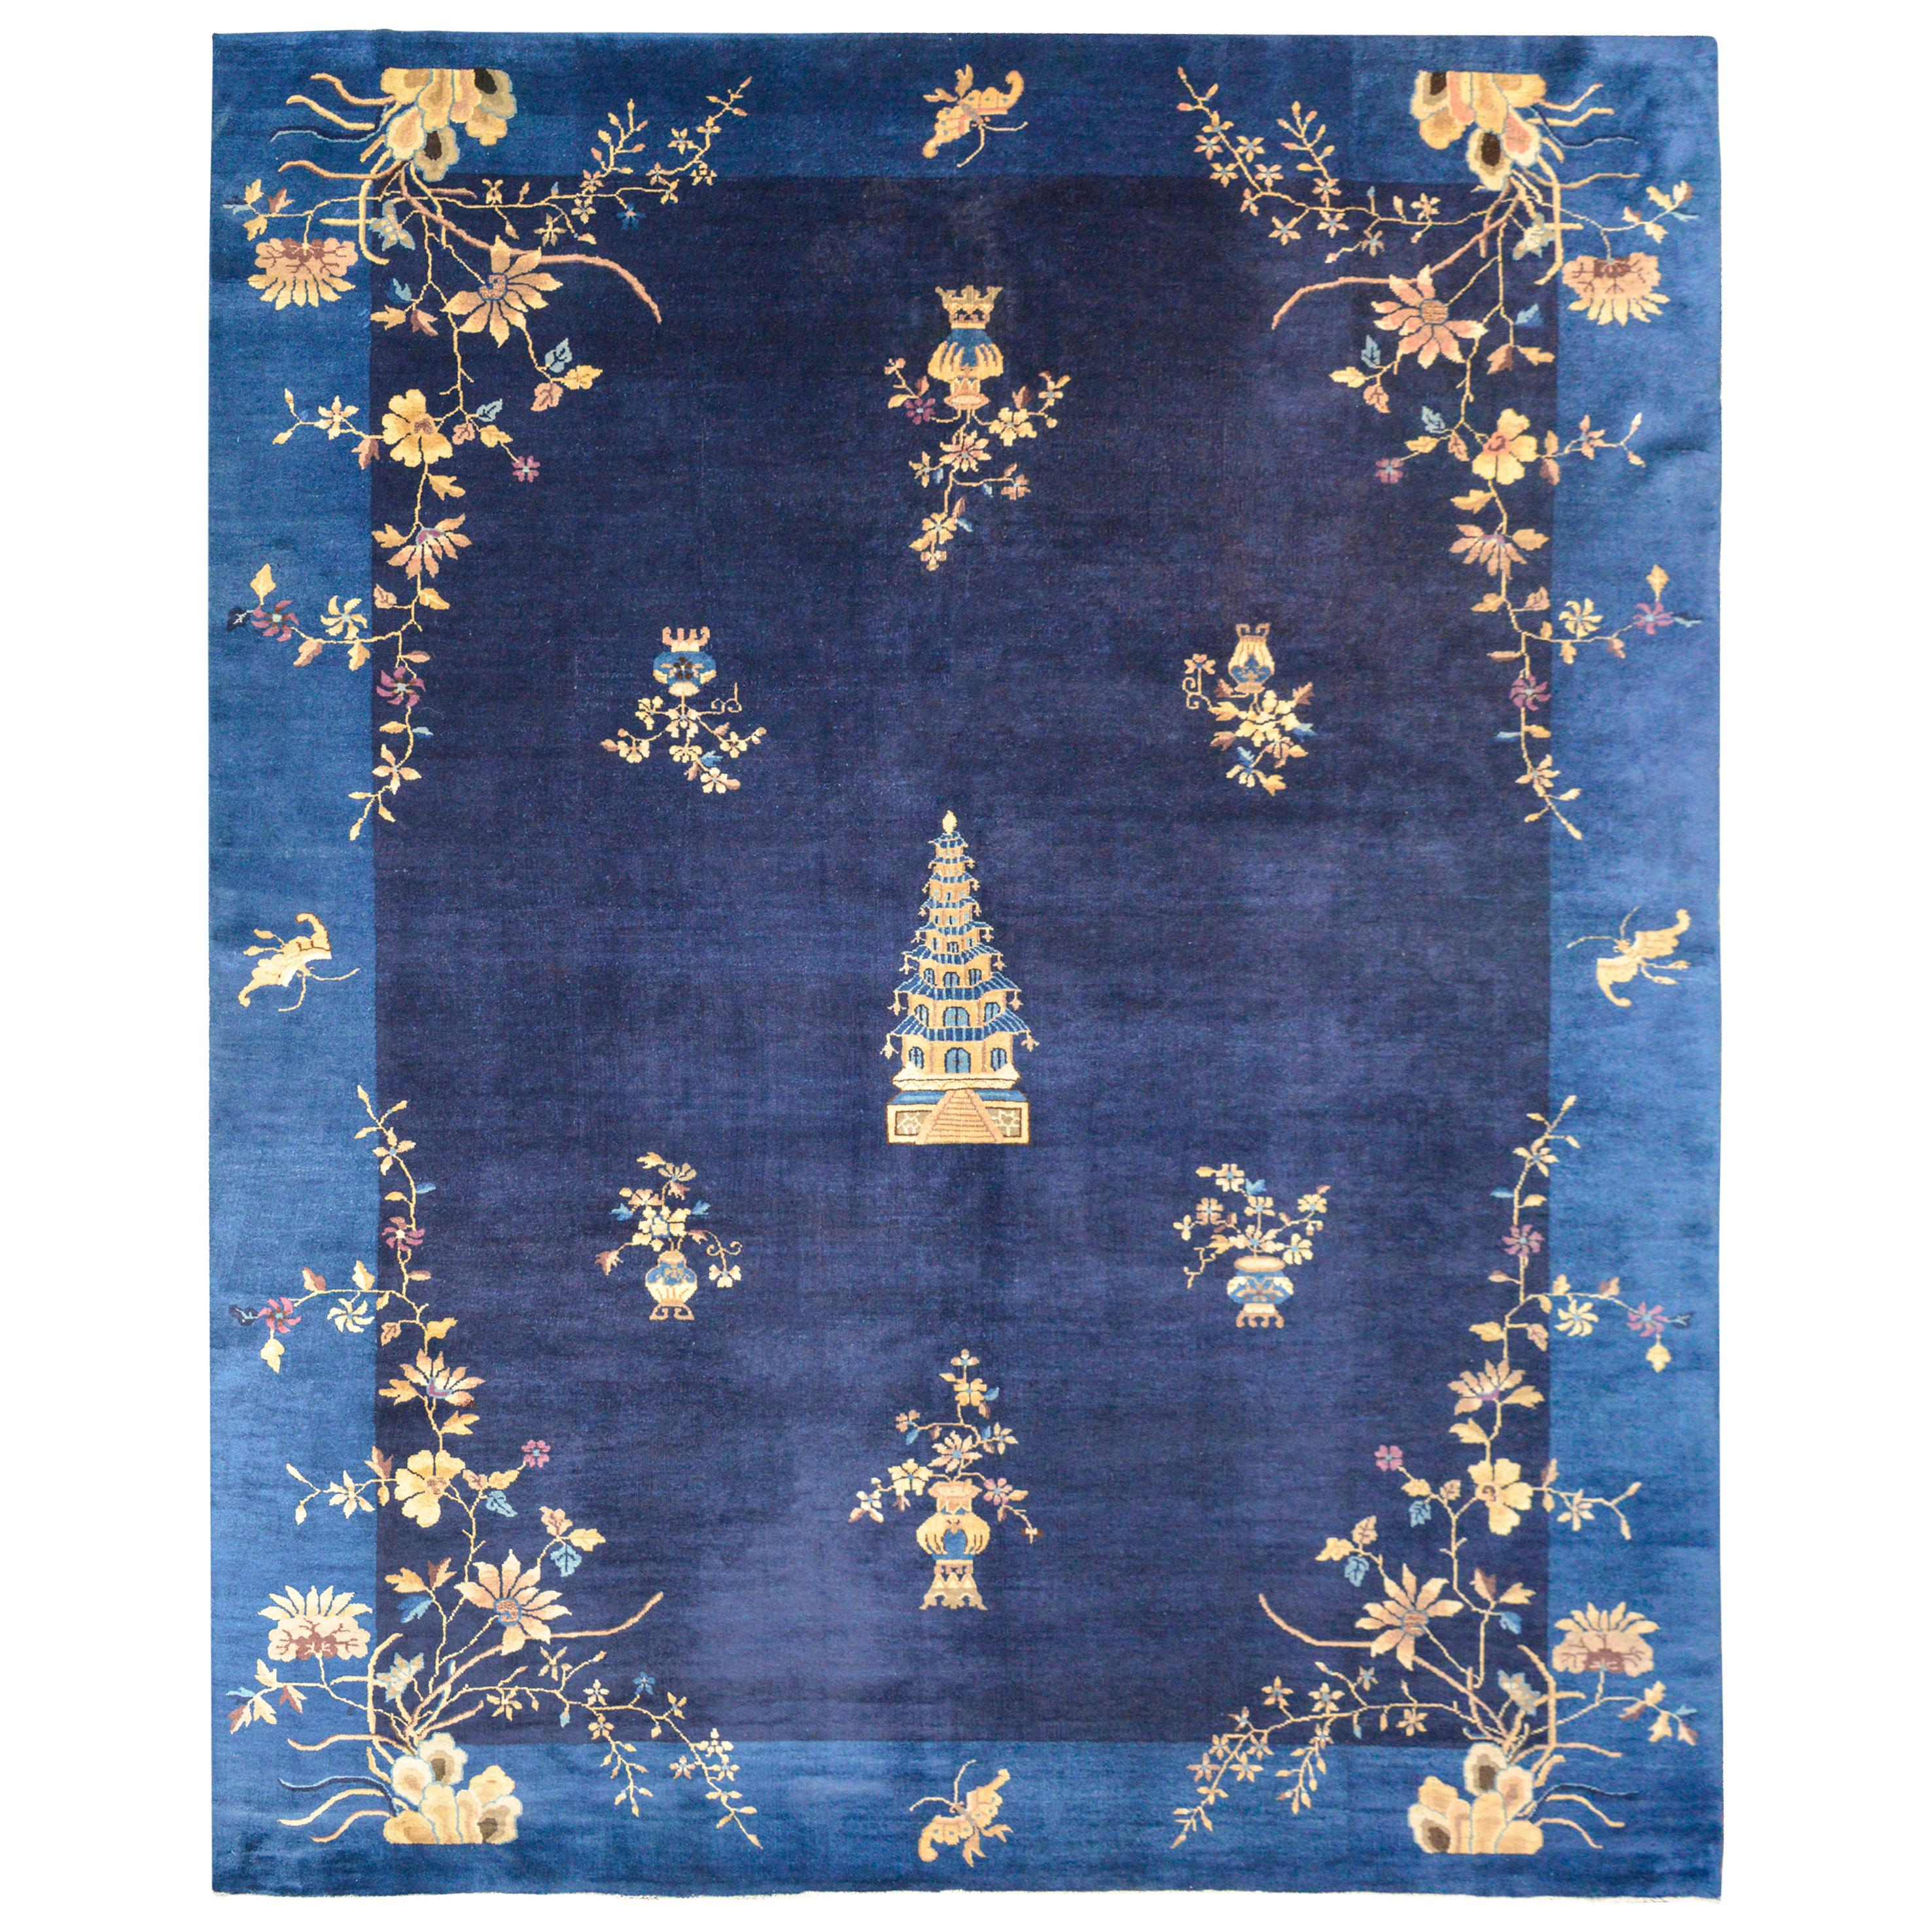 Outstanding Early 20th Century Chinese Art Deco Rug